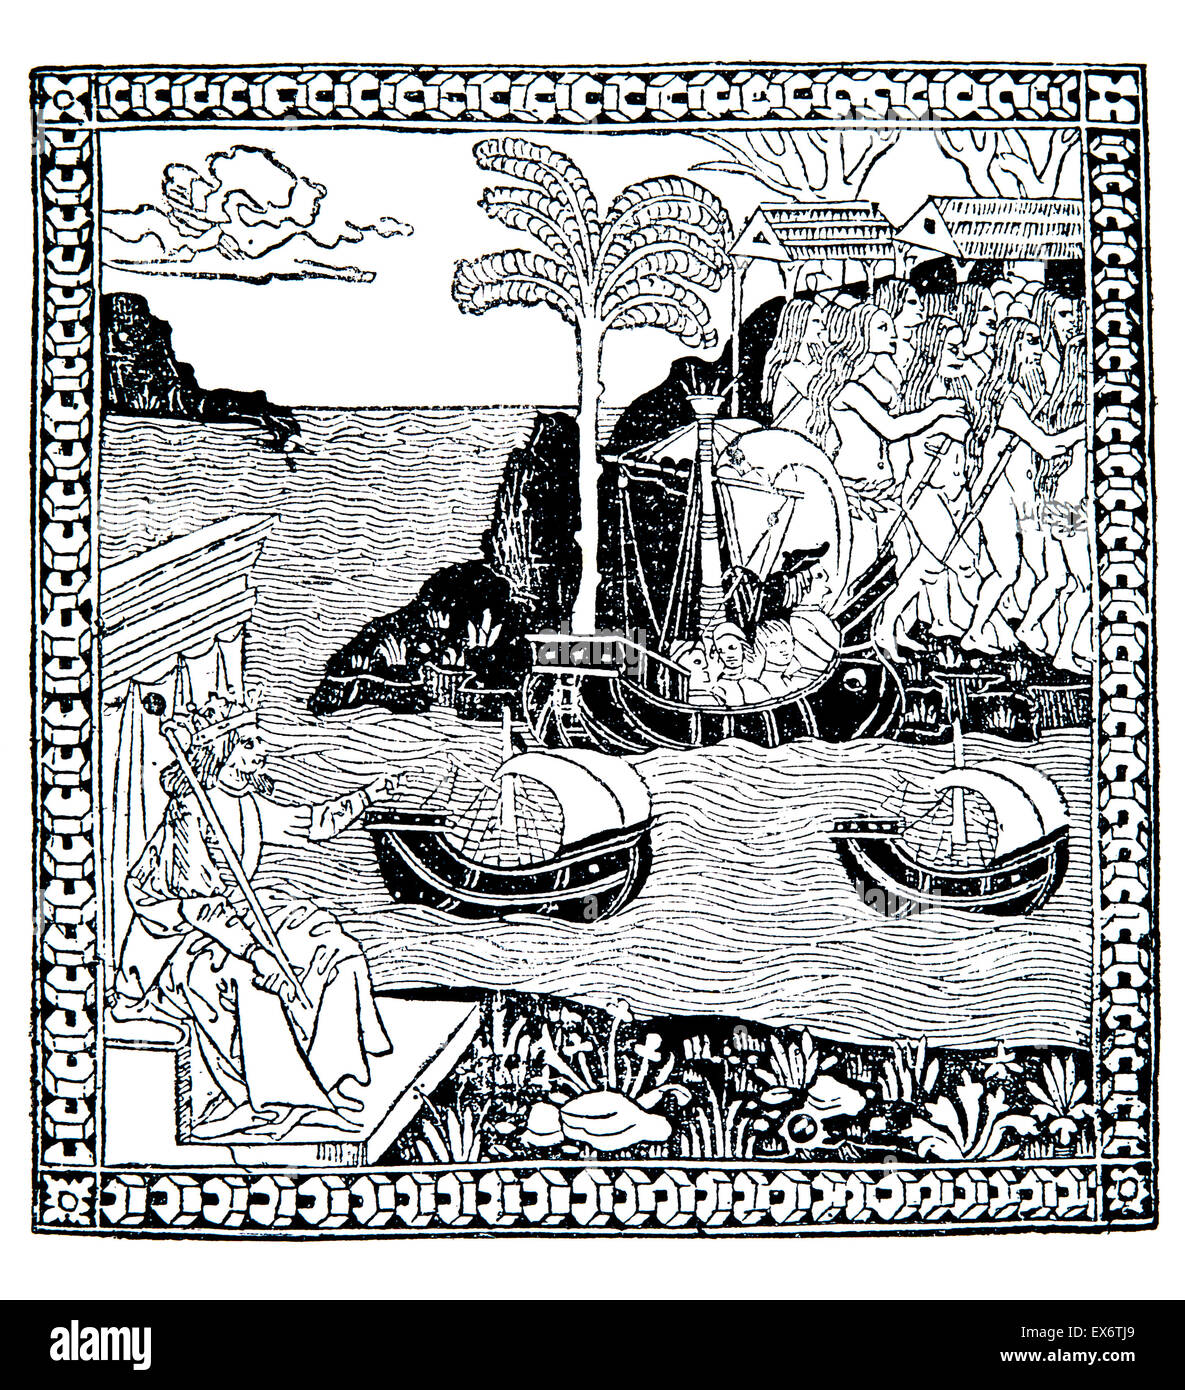 The Discovery of the Indes, 1493, woodcut Italian School illustration of Columbus' voyage - Stock Image